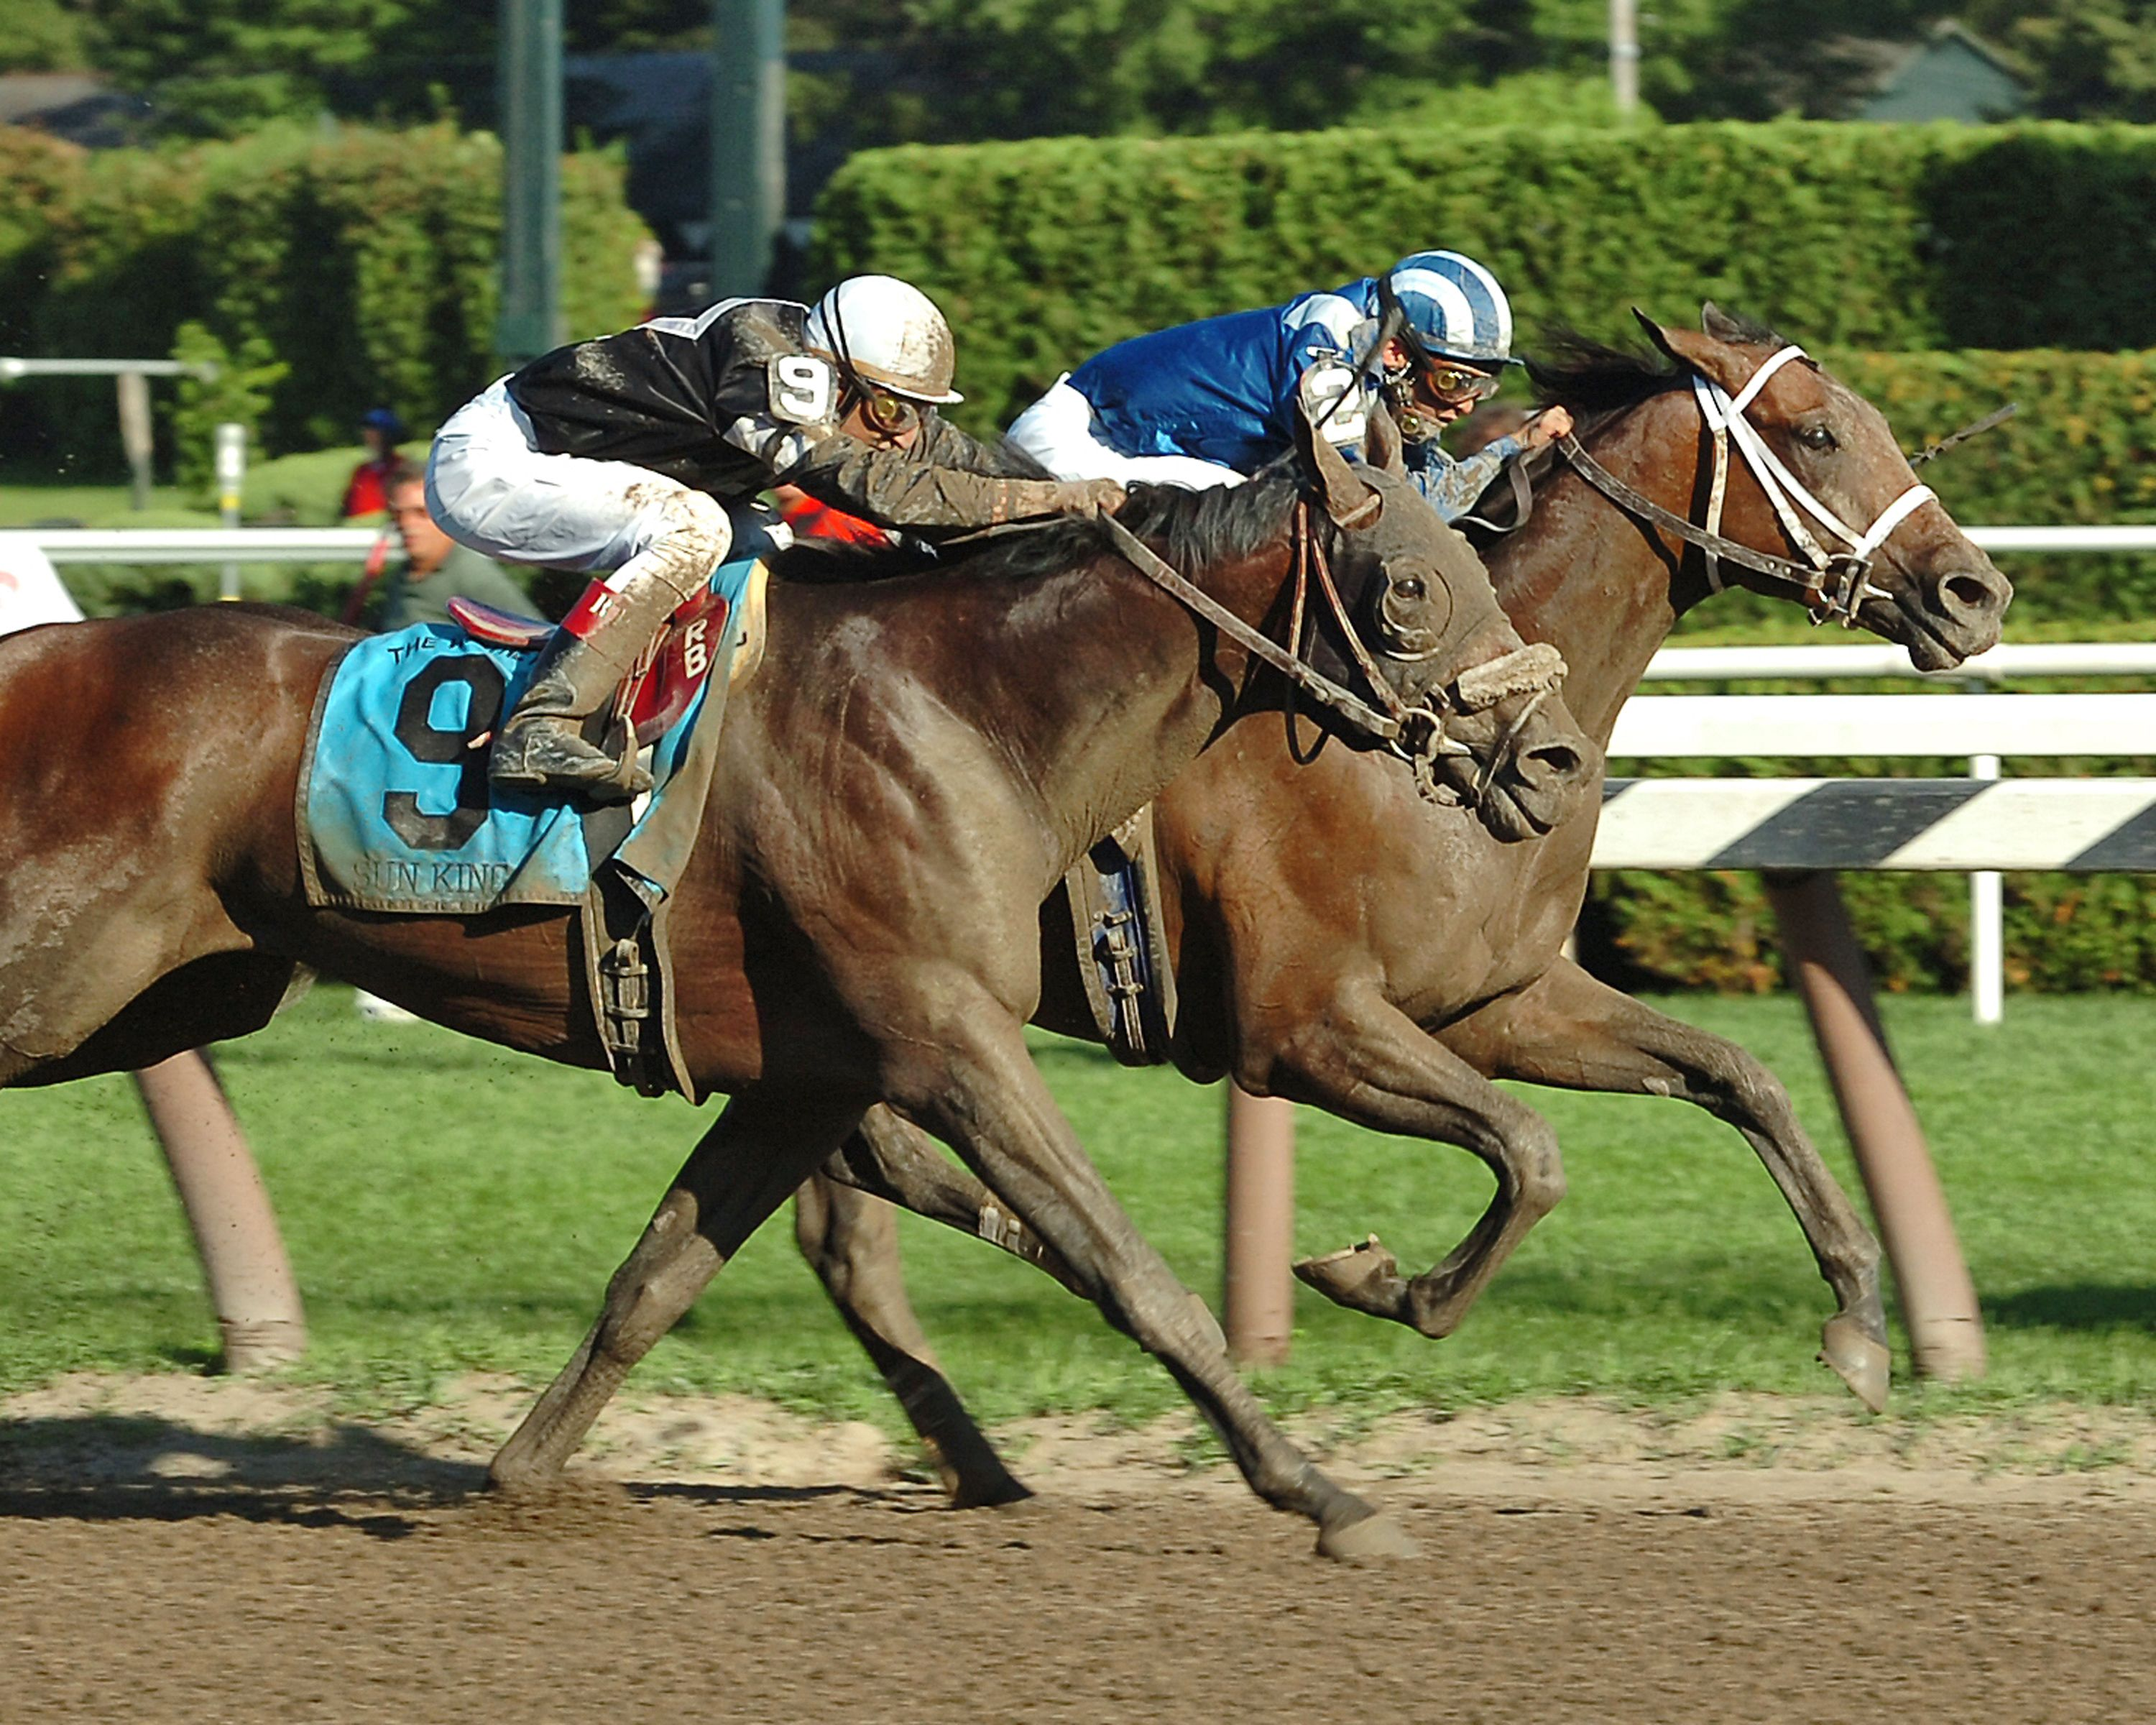 Invasor, on the rail with Fernando Jara up, defeating Sun KIng, 2006 Whitney Handicap (NYRA)